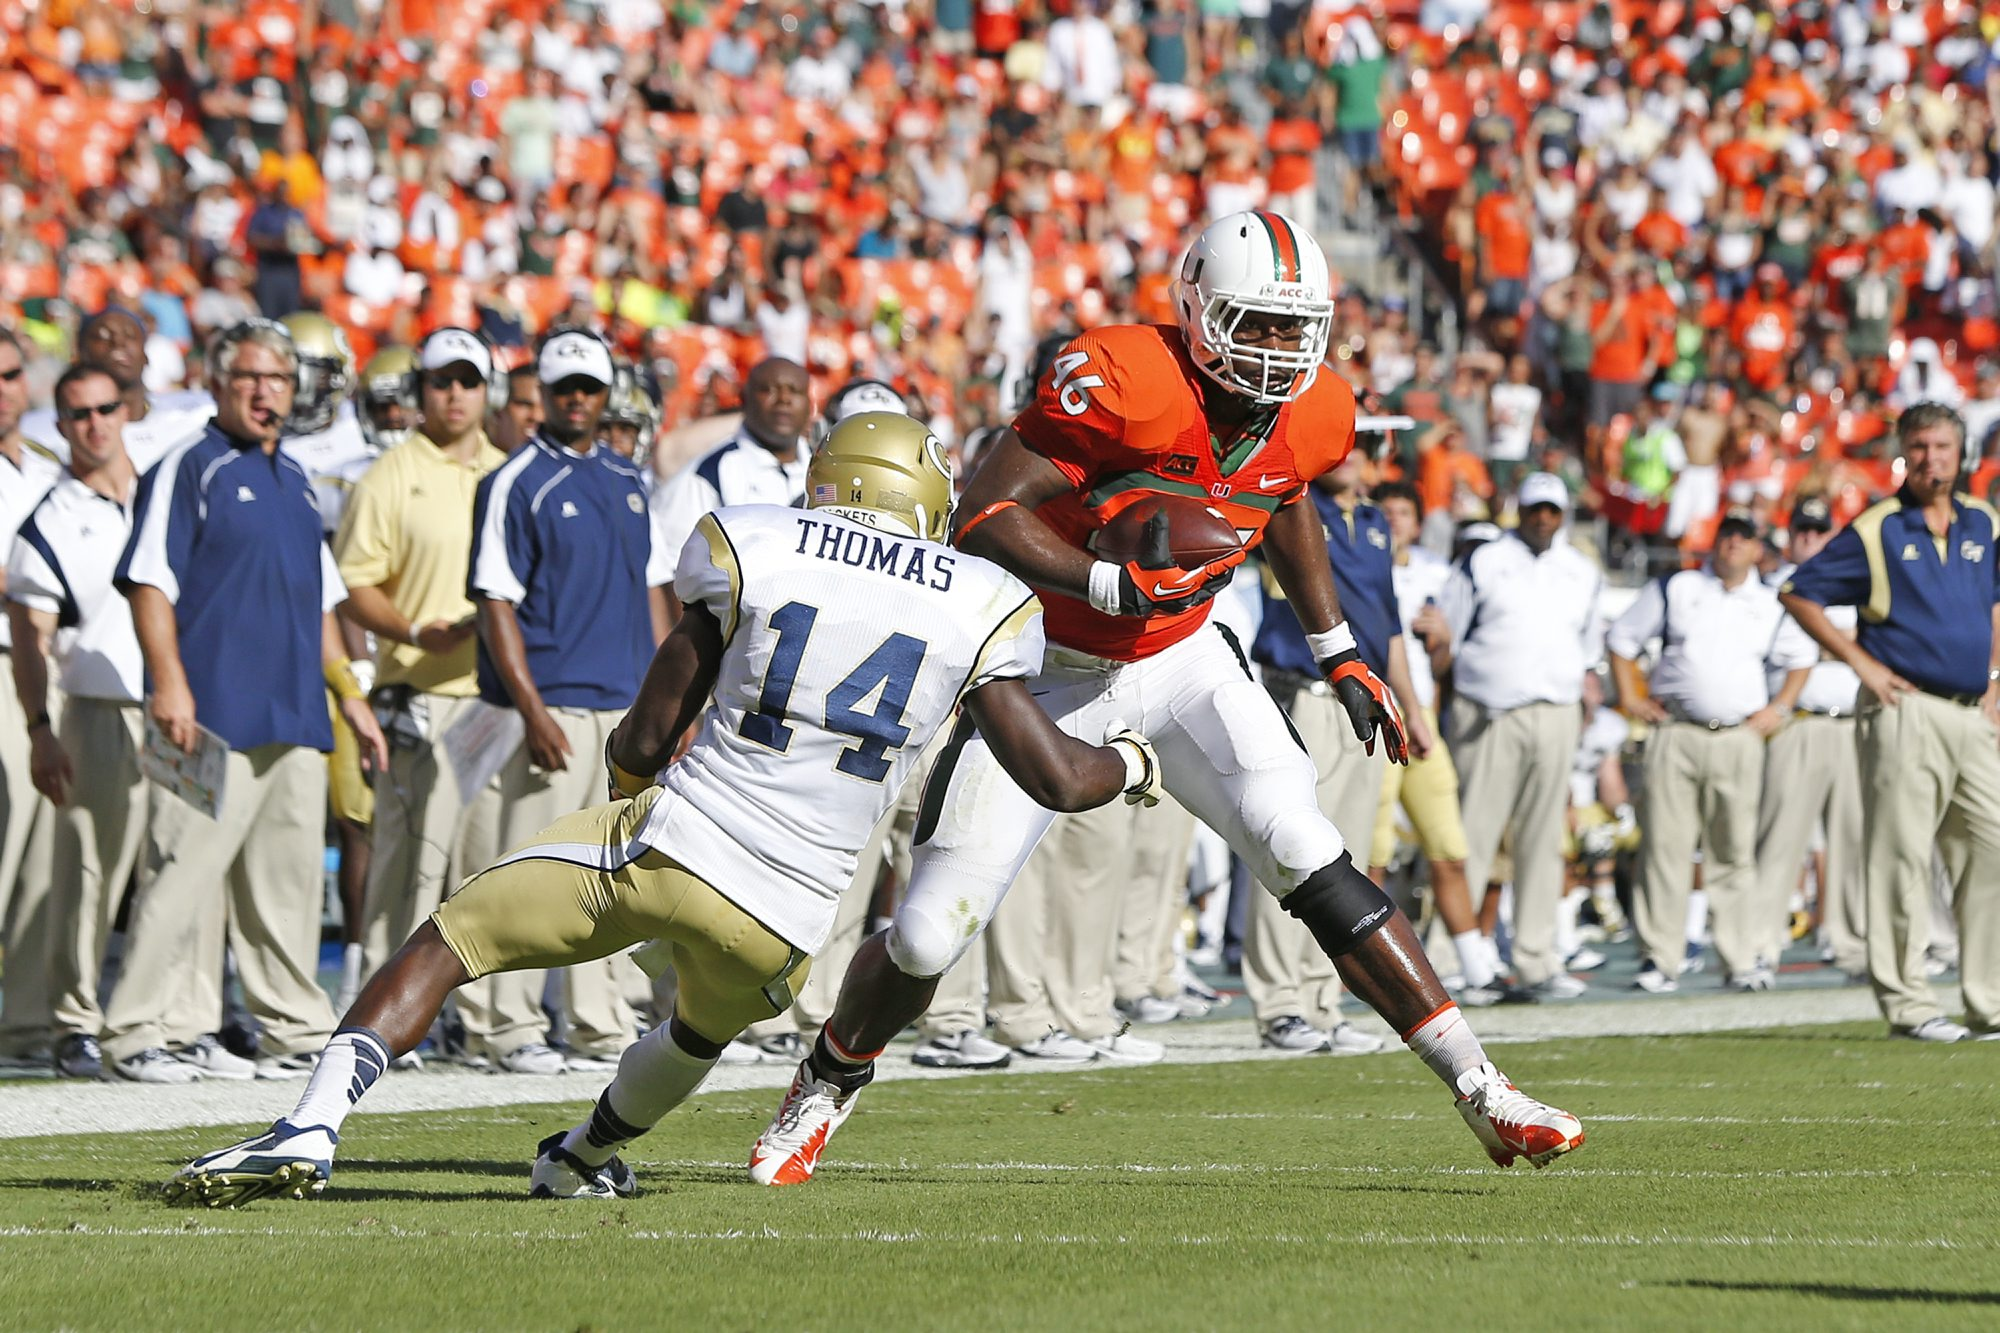 Miami Hurricanes tight end Clive Walford had his ups and downs throughout his college career but is rife with potential.